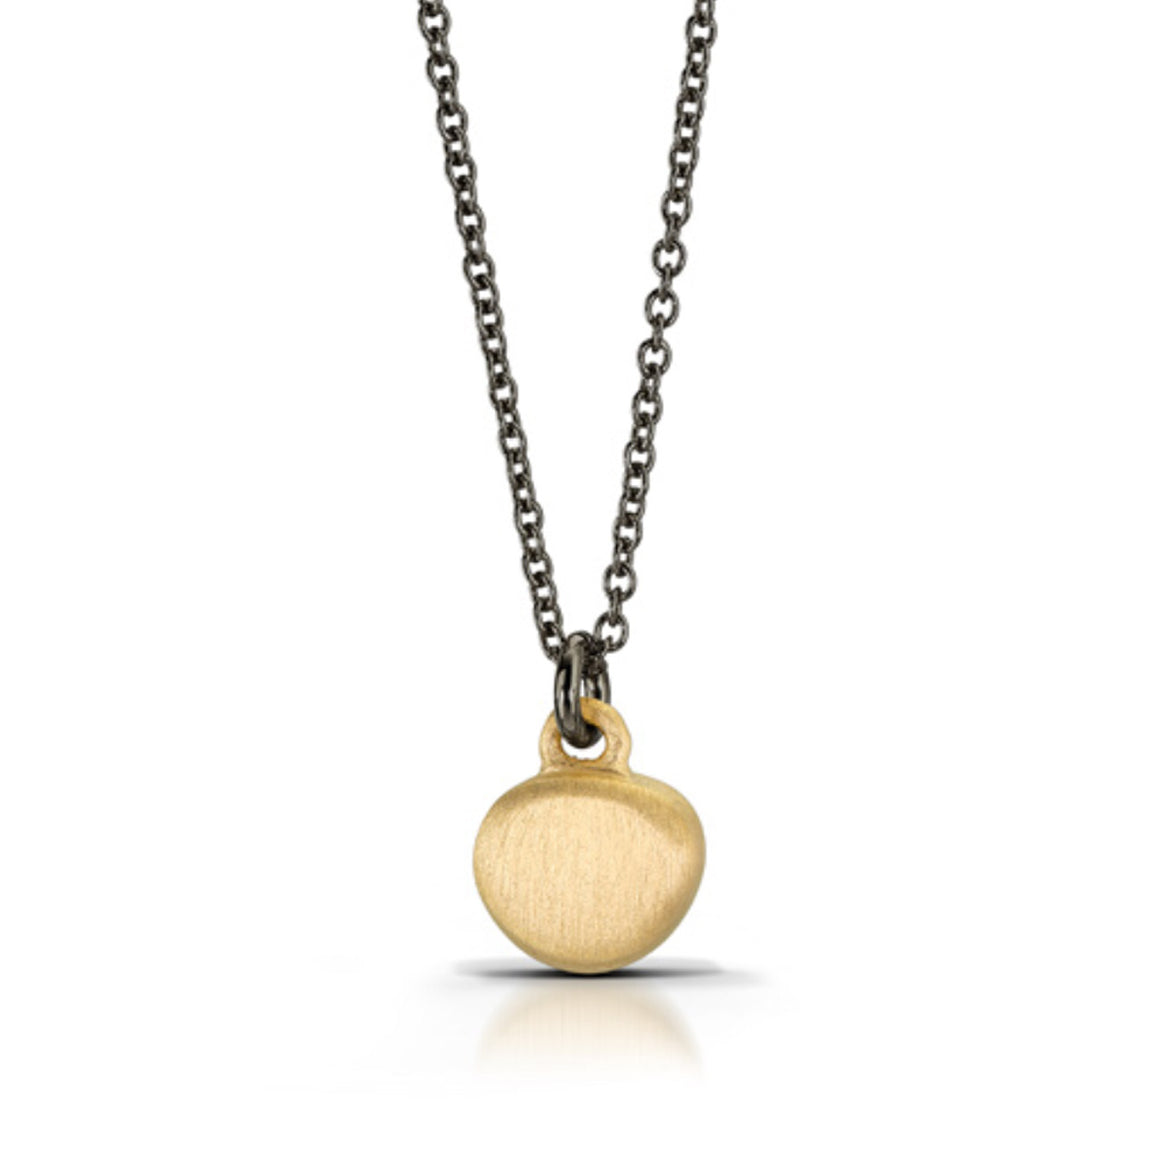 Baby Pebble Pendant in 14k Vermeil Finish and Oxidized Silver Chain